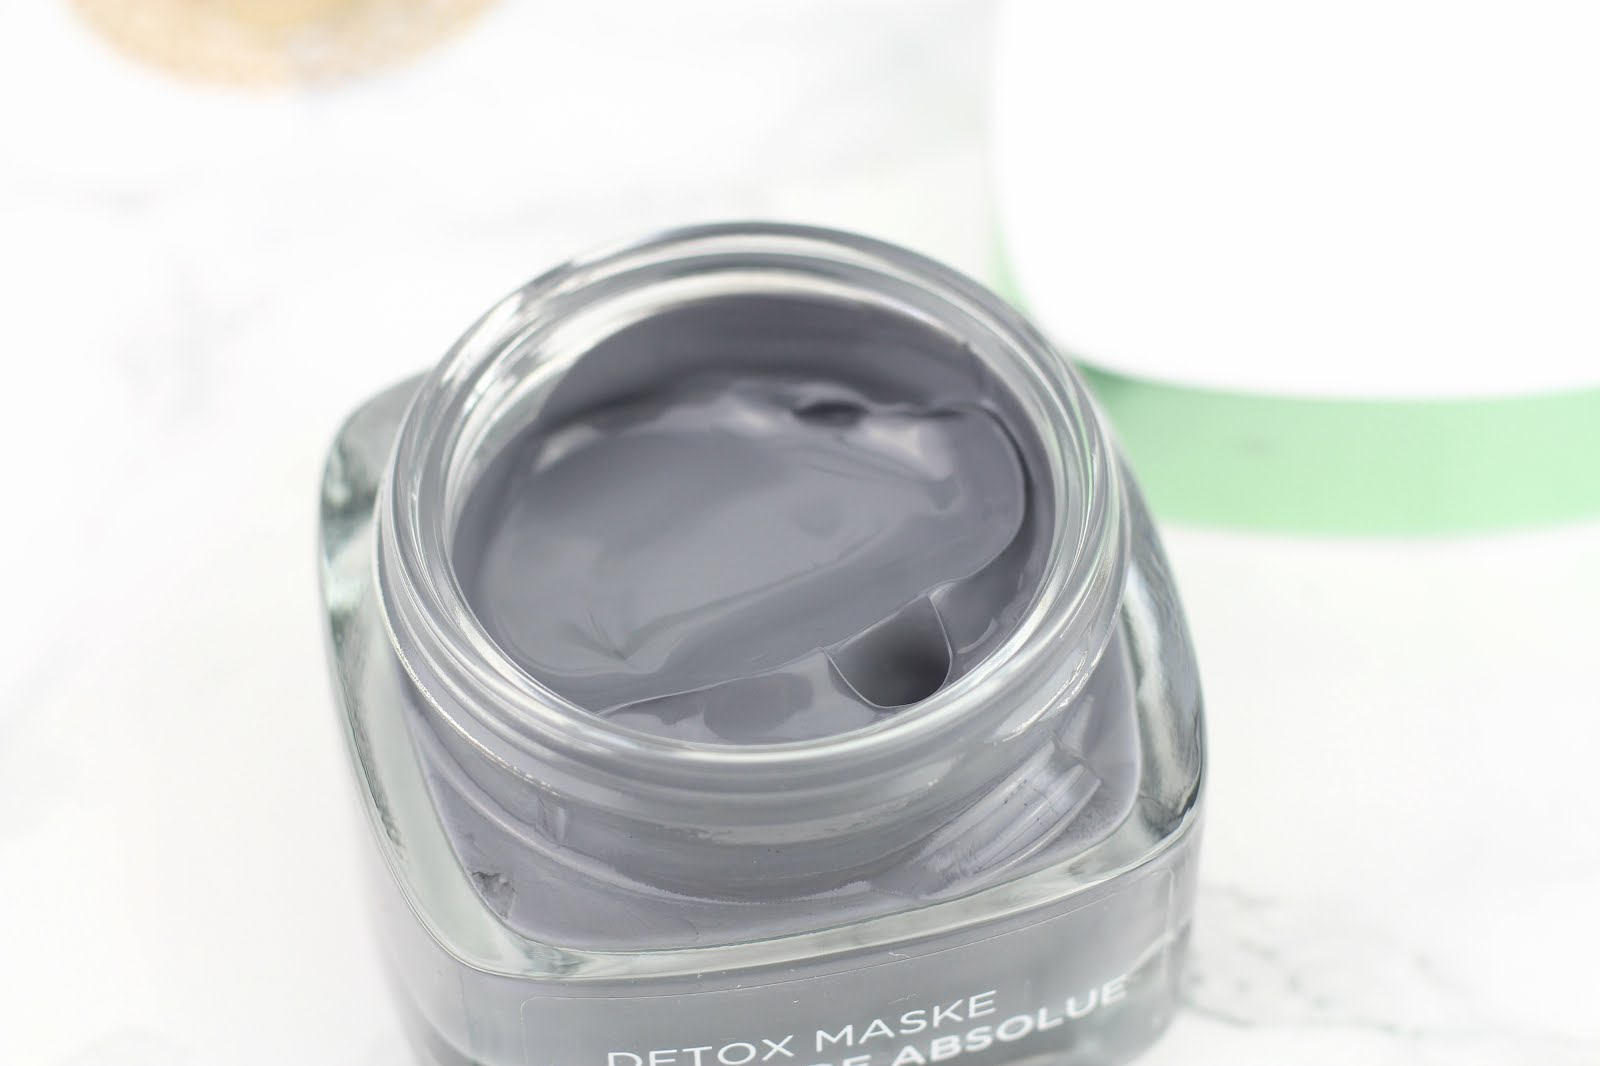 loreal detox maske, loreal detox mask, loreal maske, loreal mask, loreal tonerde absolue maske, loreal tonerde absolue detox maske, loreal clay mask detox, glamglow dupe, mask against acne